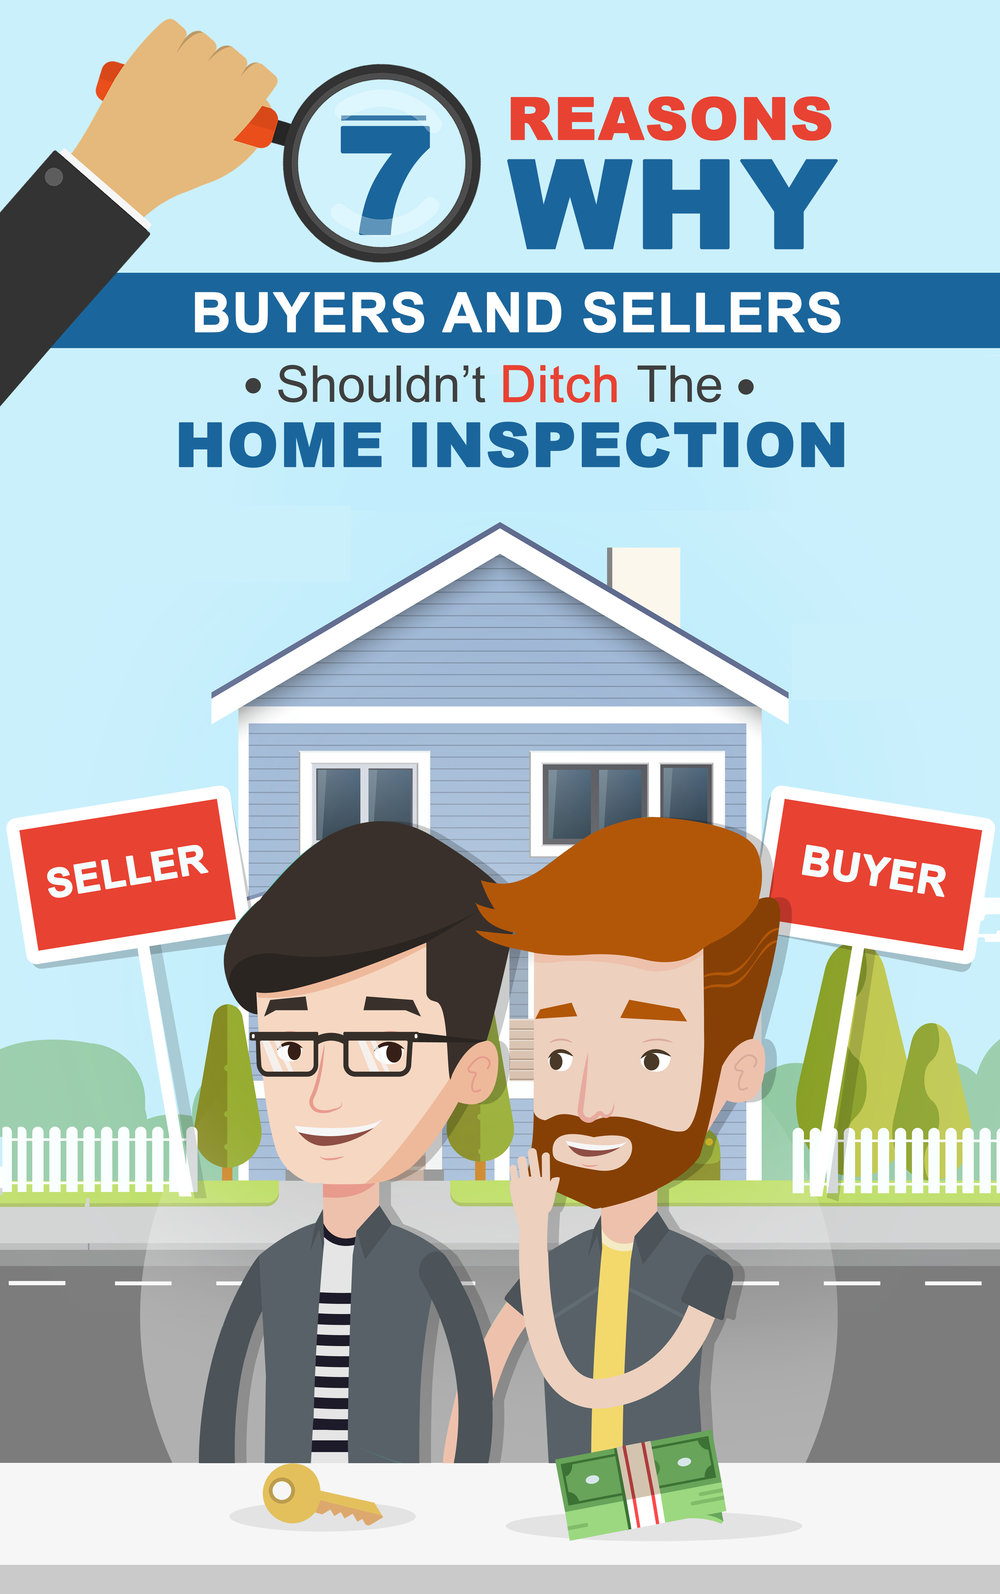 7 Reasons Why Buyers and Sellers Shouldn't Ditch The Home Inspection